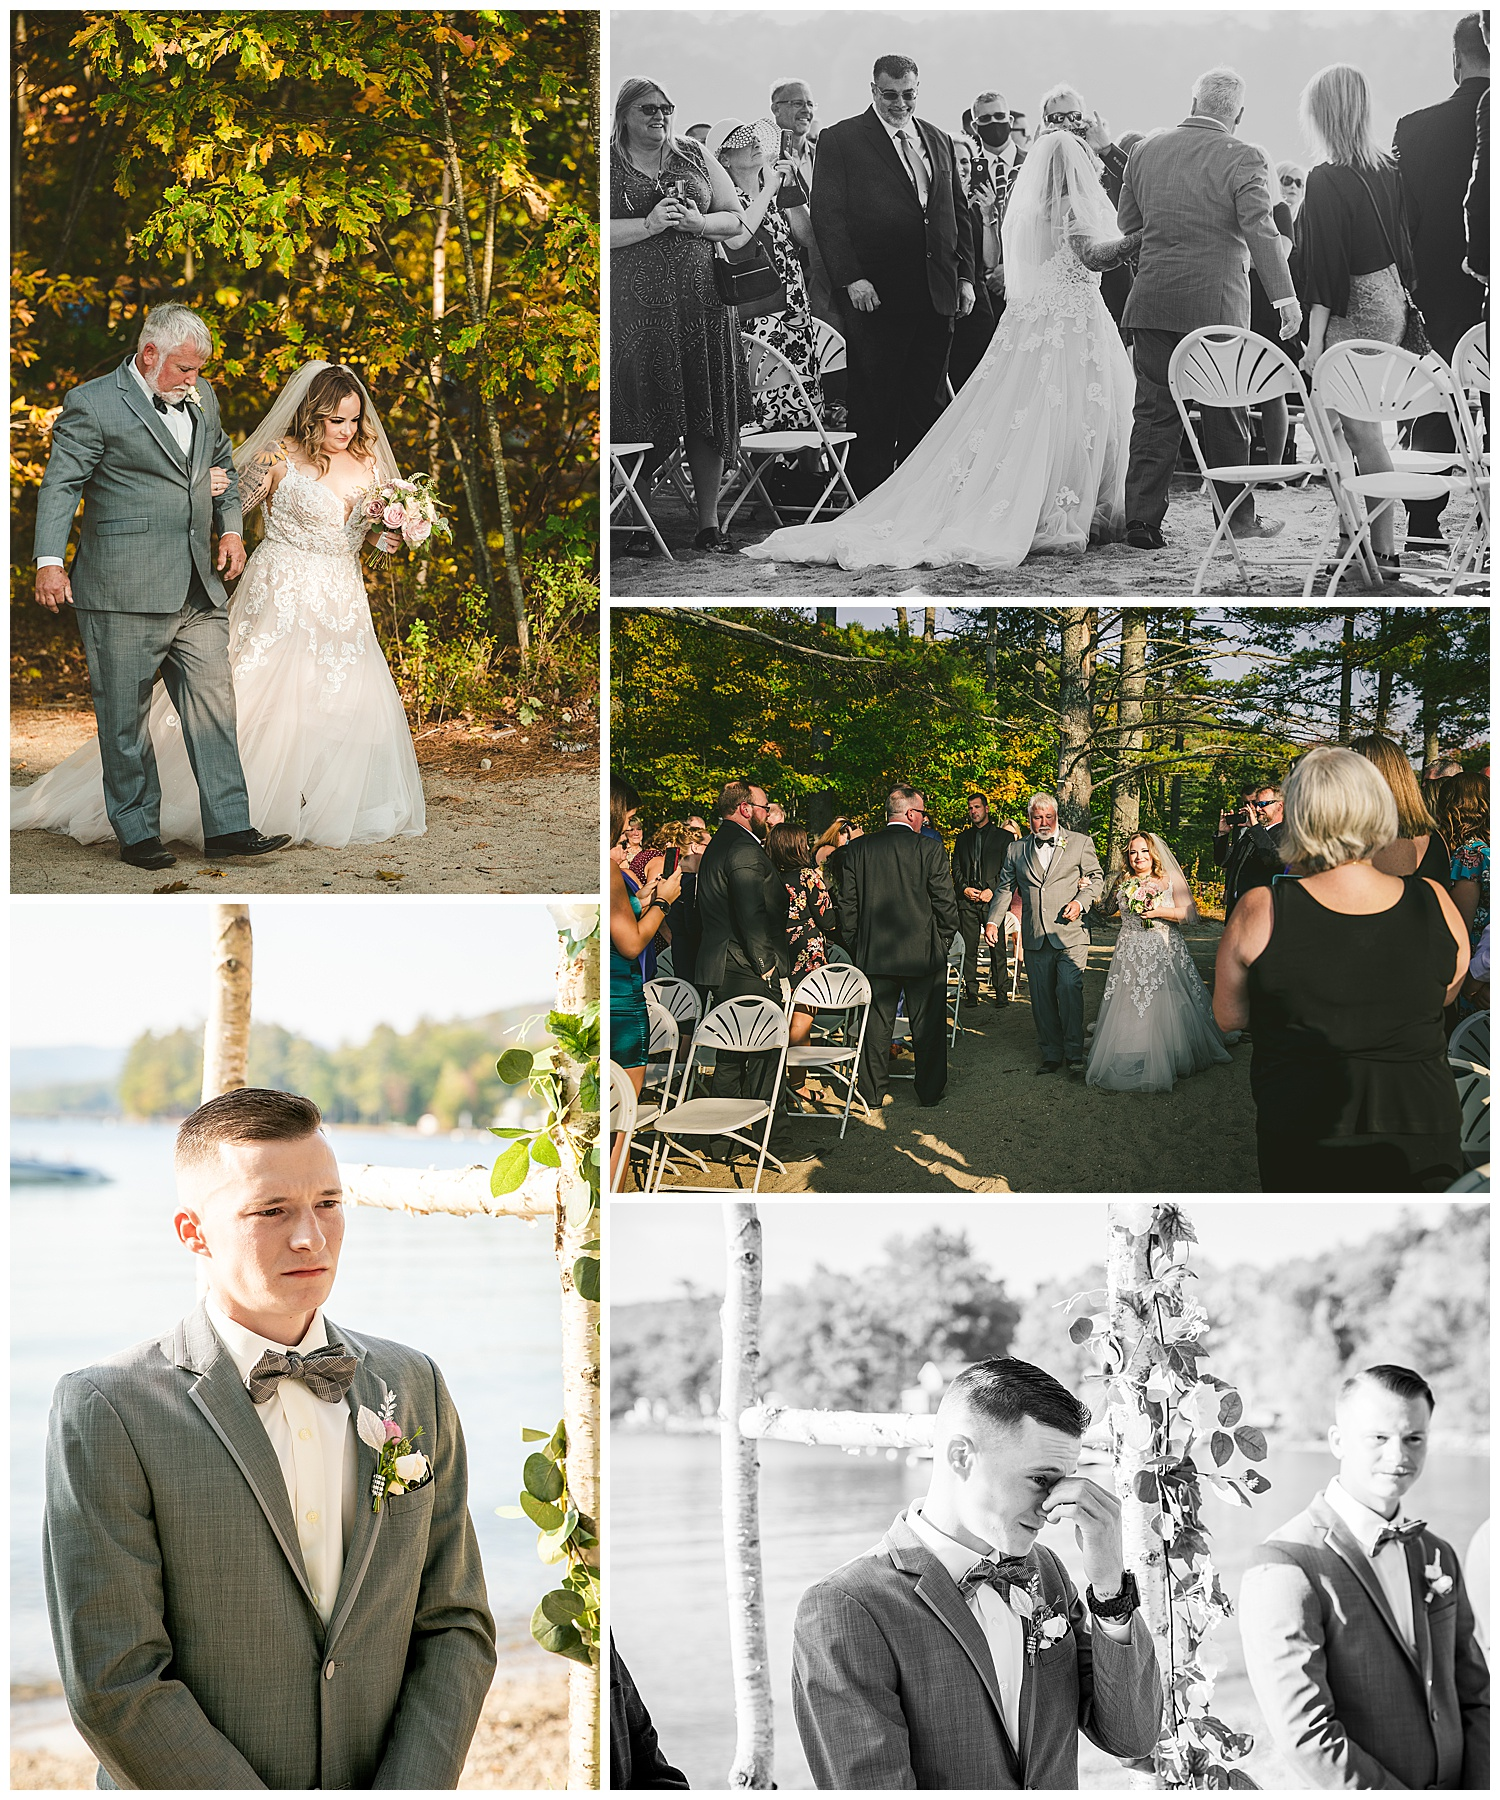 Inn on Newfound Lake Bristol, NH Wedding Photography